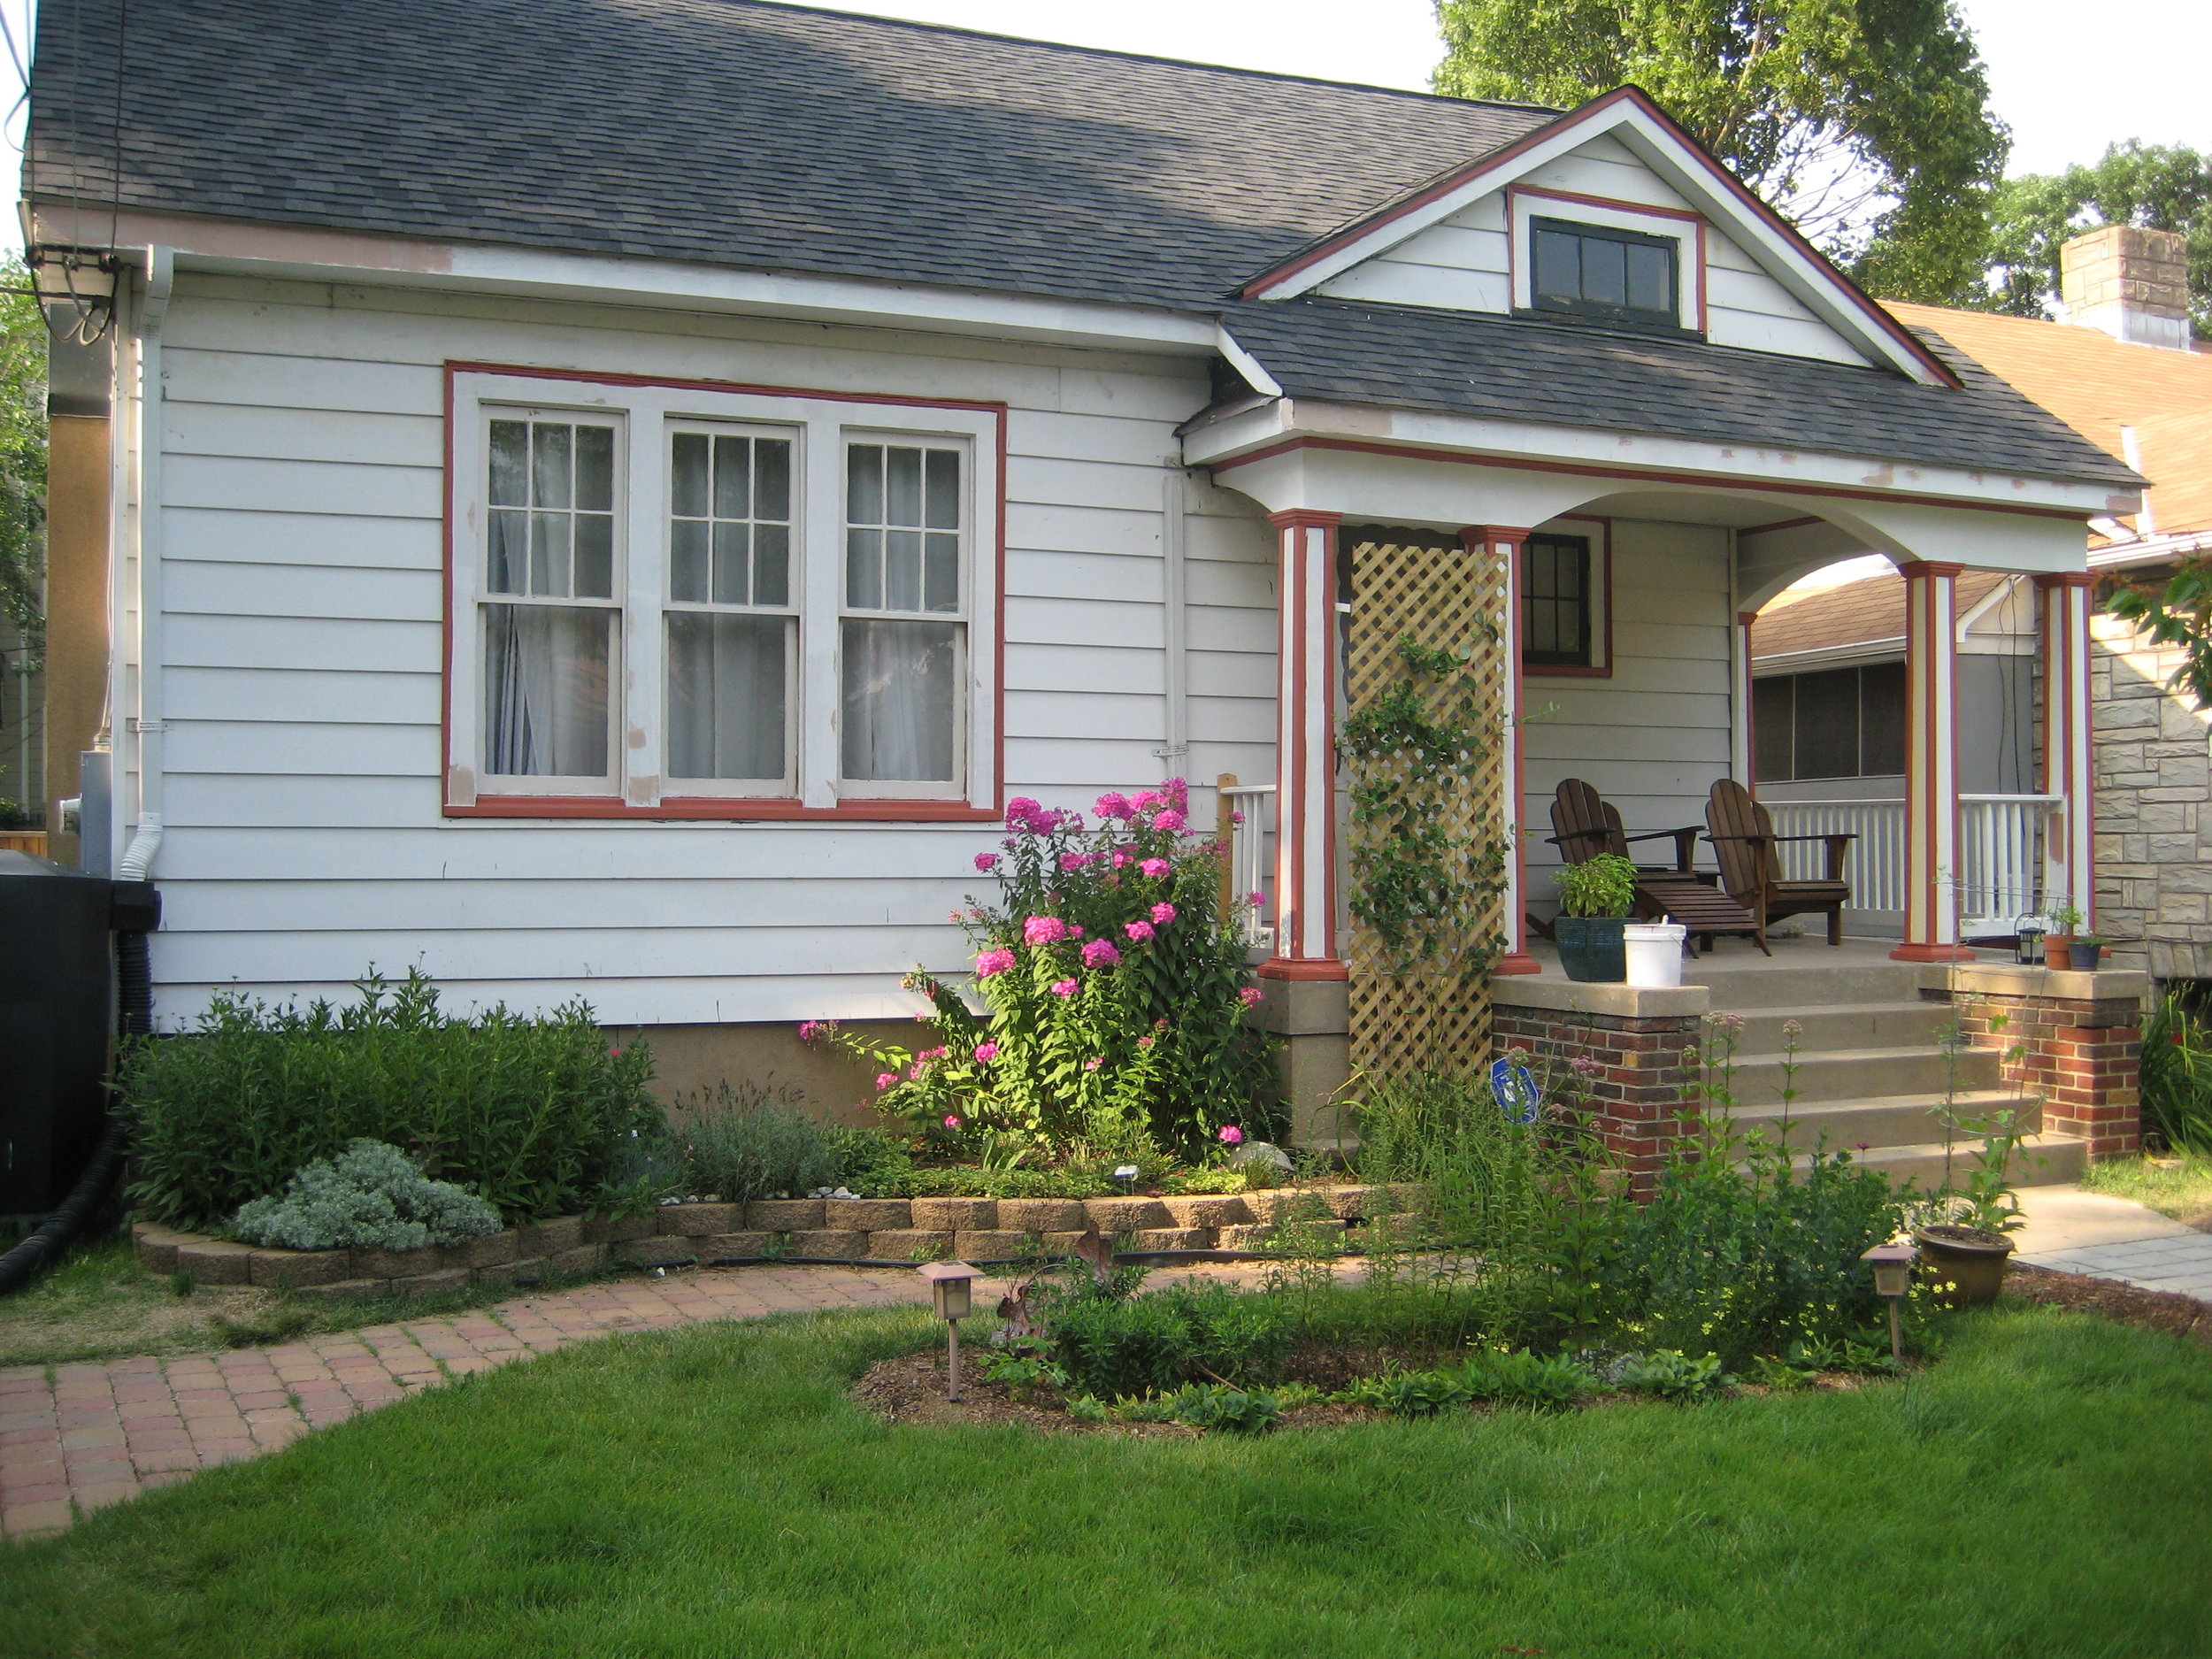 About RiverSmart Homes -